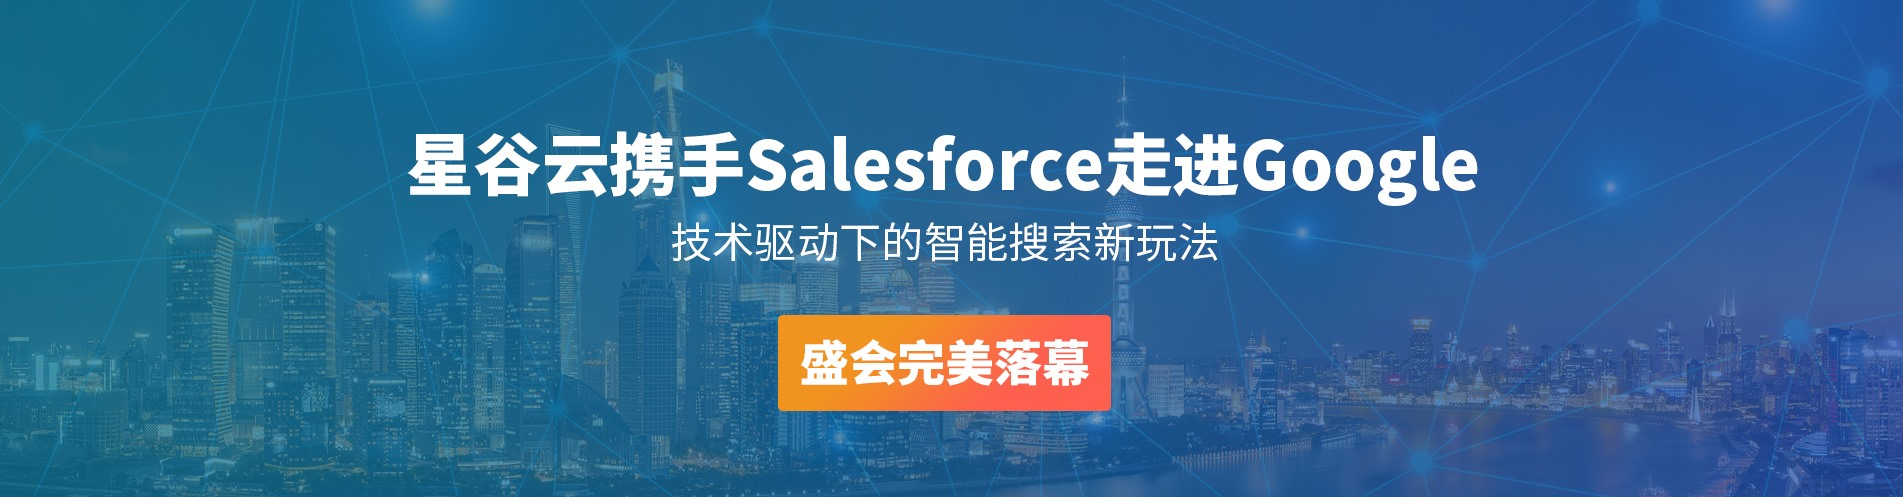 googlesalesforce